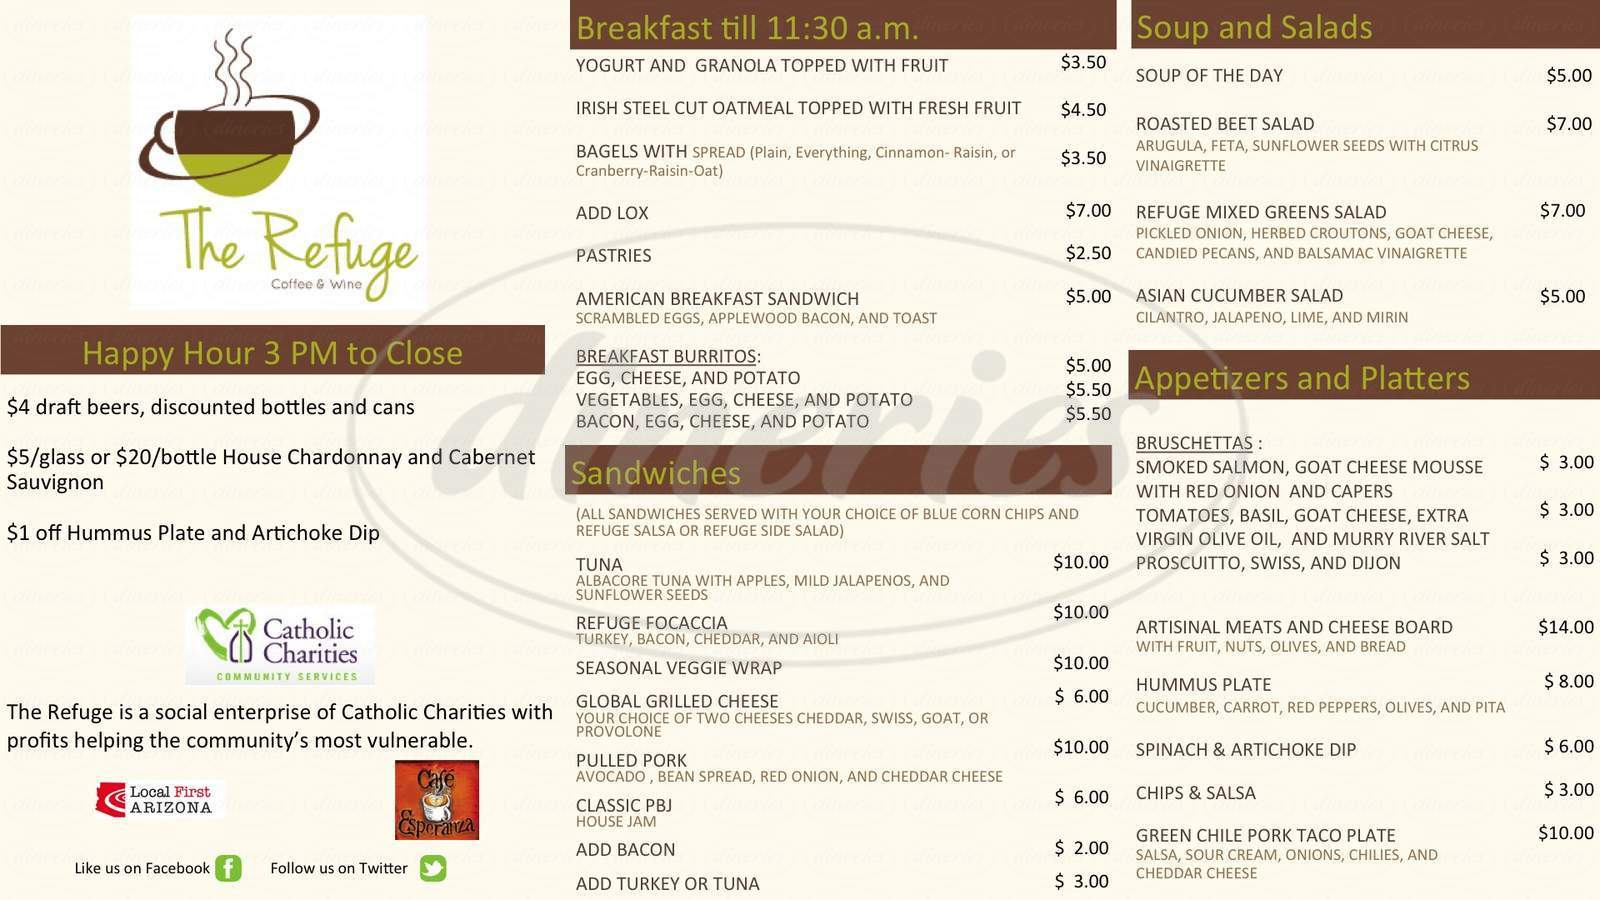 menu for The Refuge Cafe